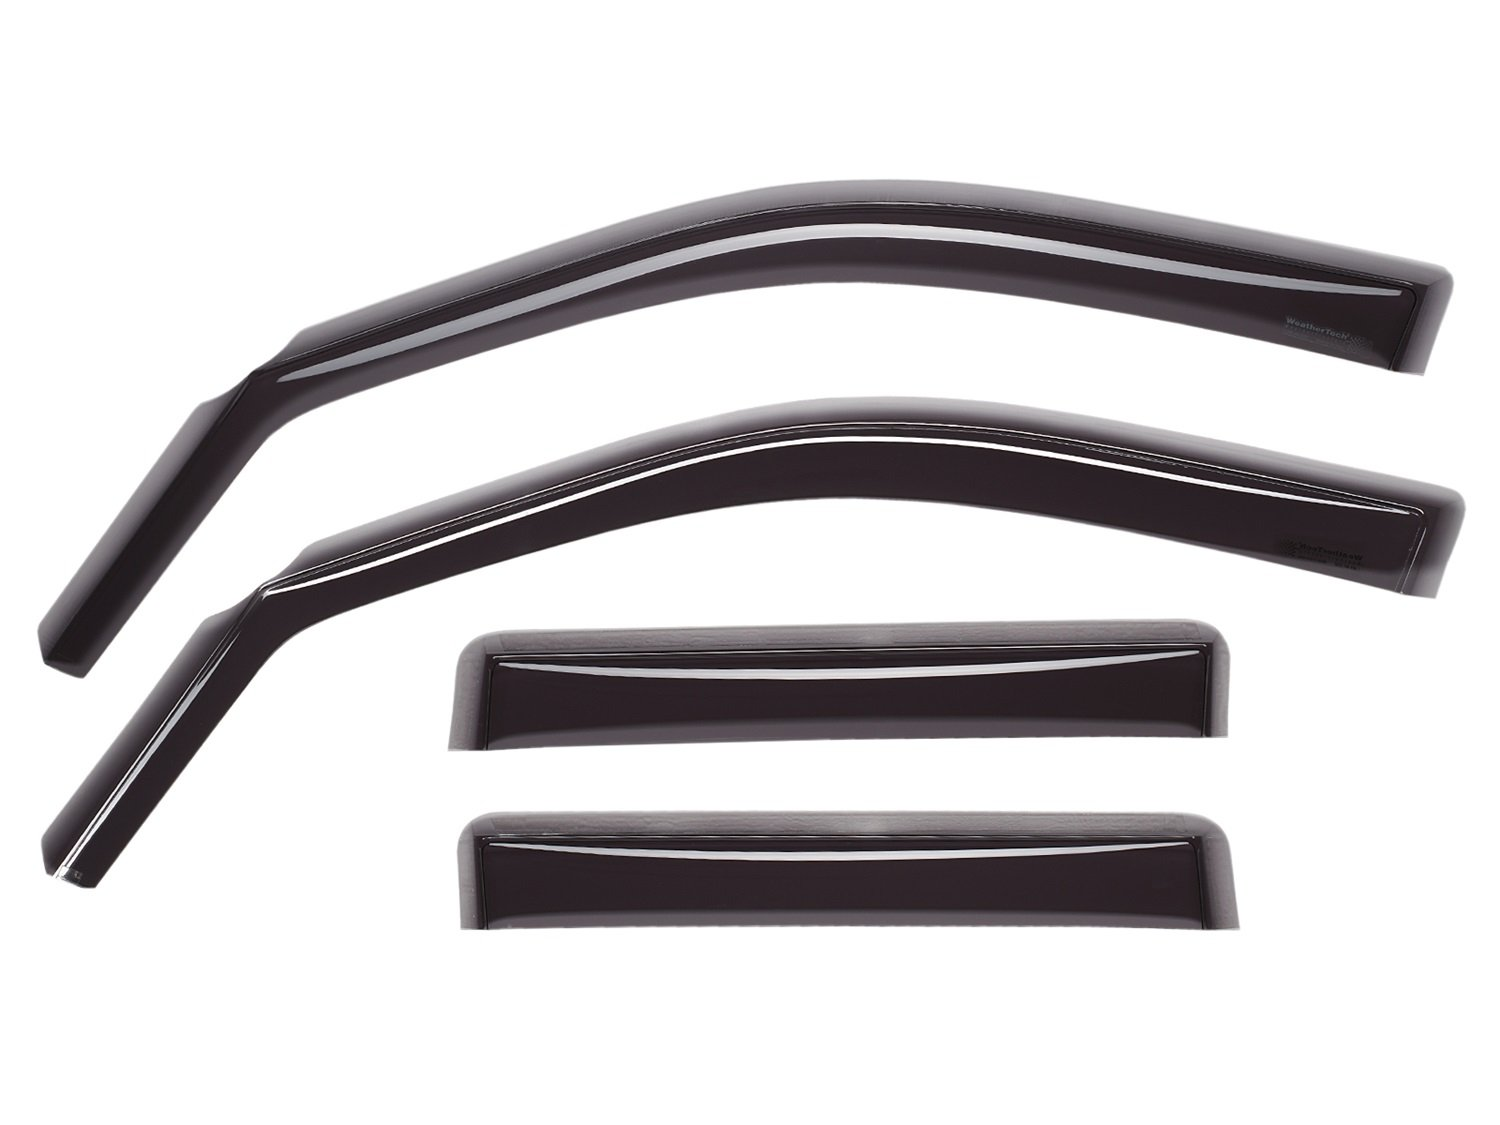 WeatherTech Custom Fit Front & Rear Side Window Deflectors for Jeep Cherokee (4 door), Dark Smoke 82059